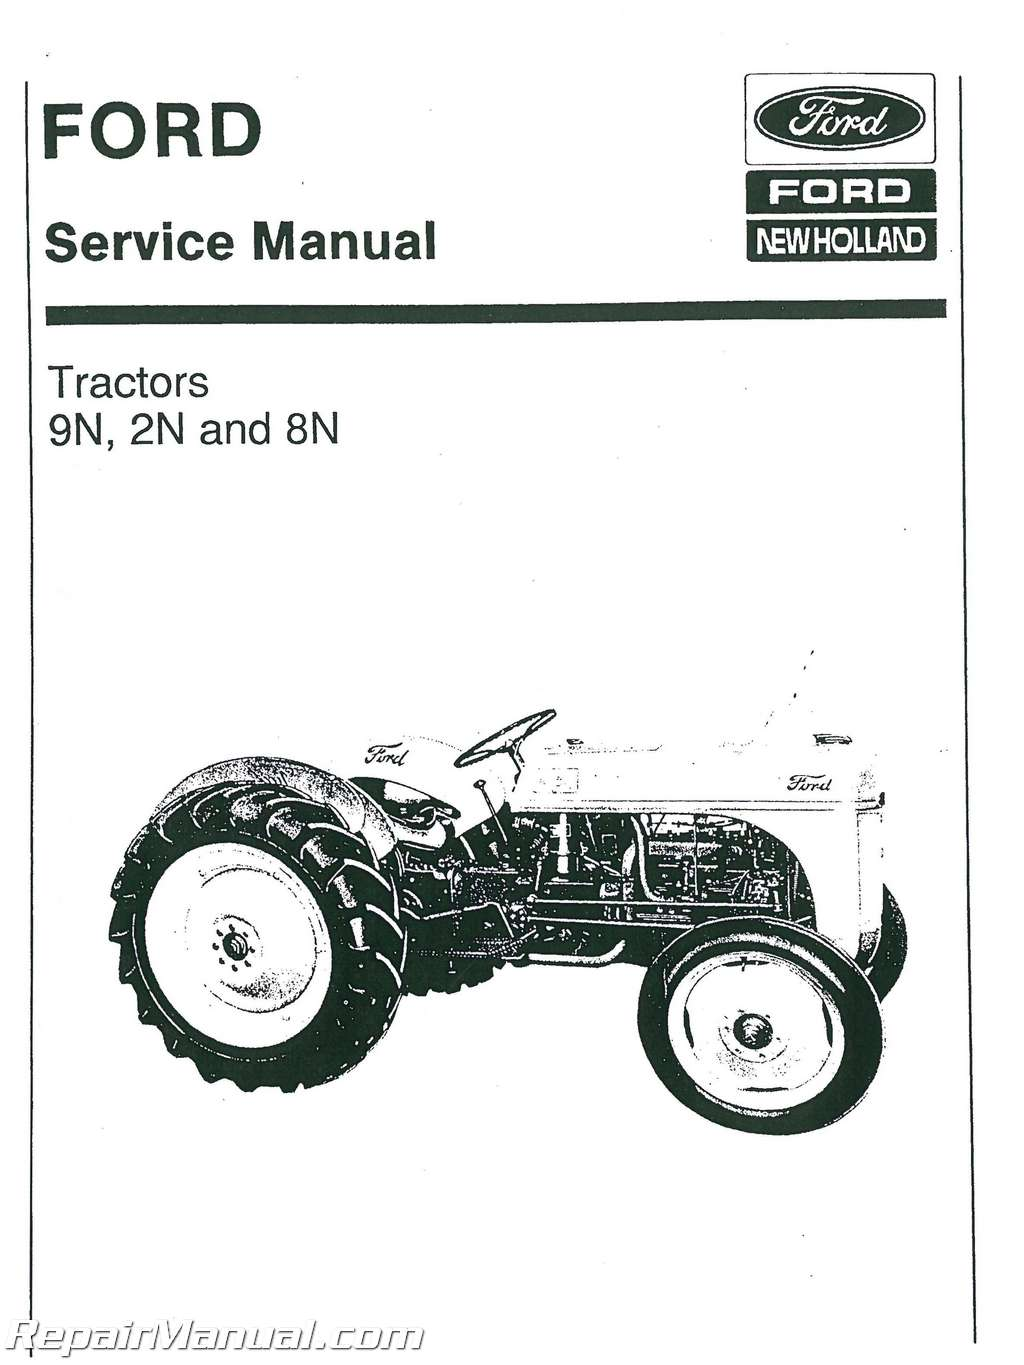 Ford 2N 8N and 9N Tractor Service Manual : JS-FO-S-2N-8N